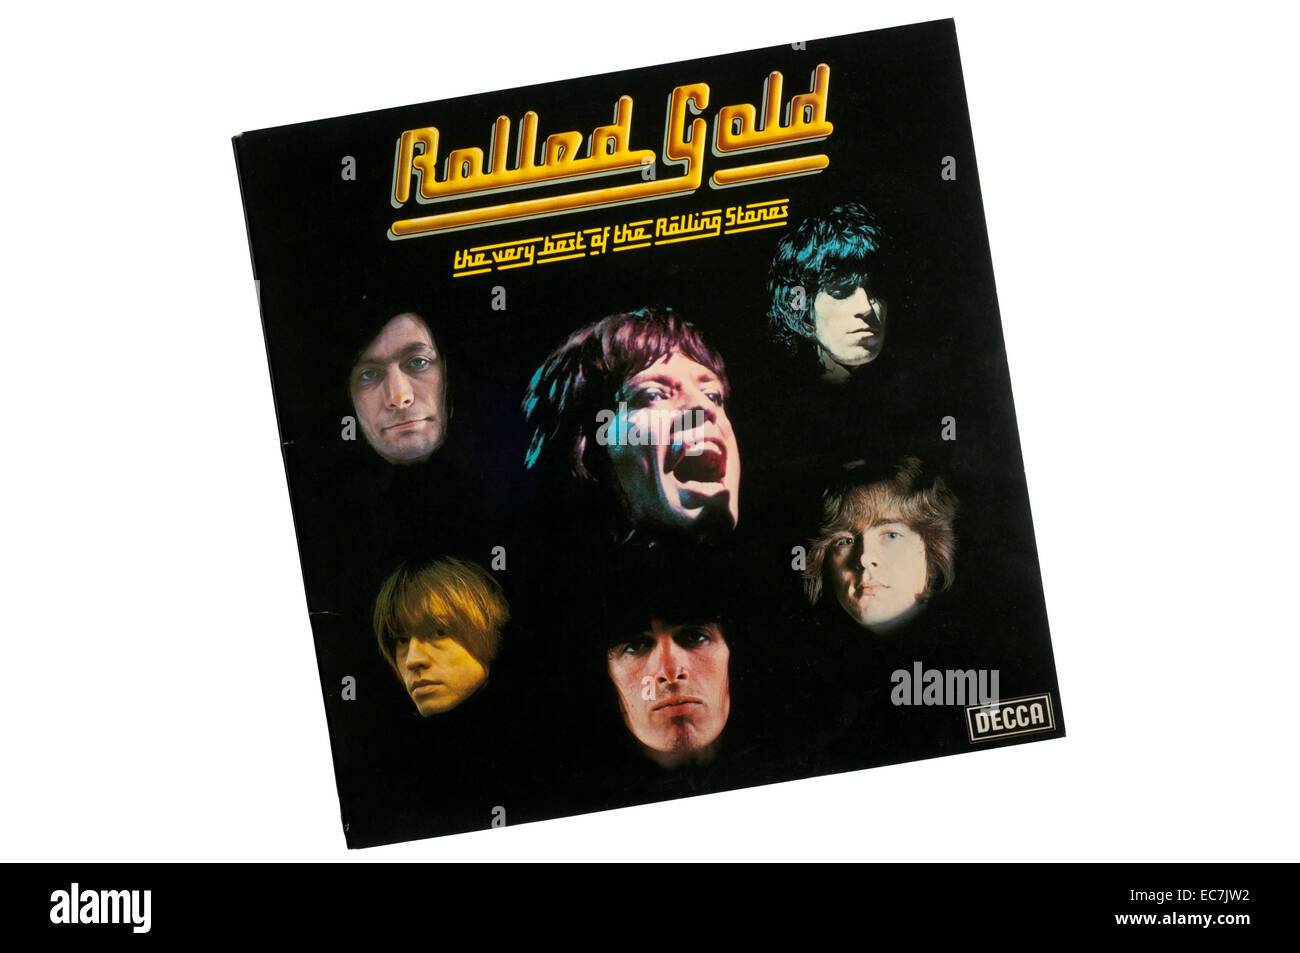 Rolled Gold was a compilation album by The Rolling Stones